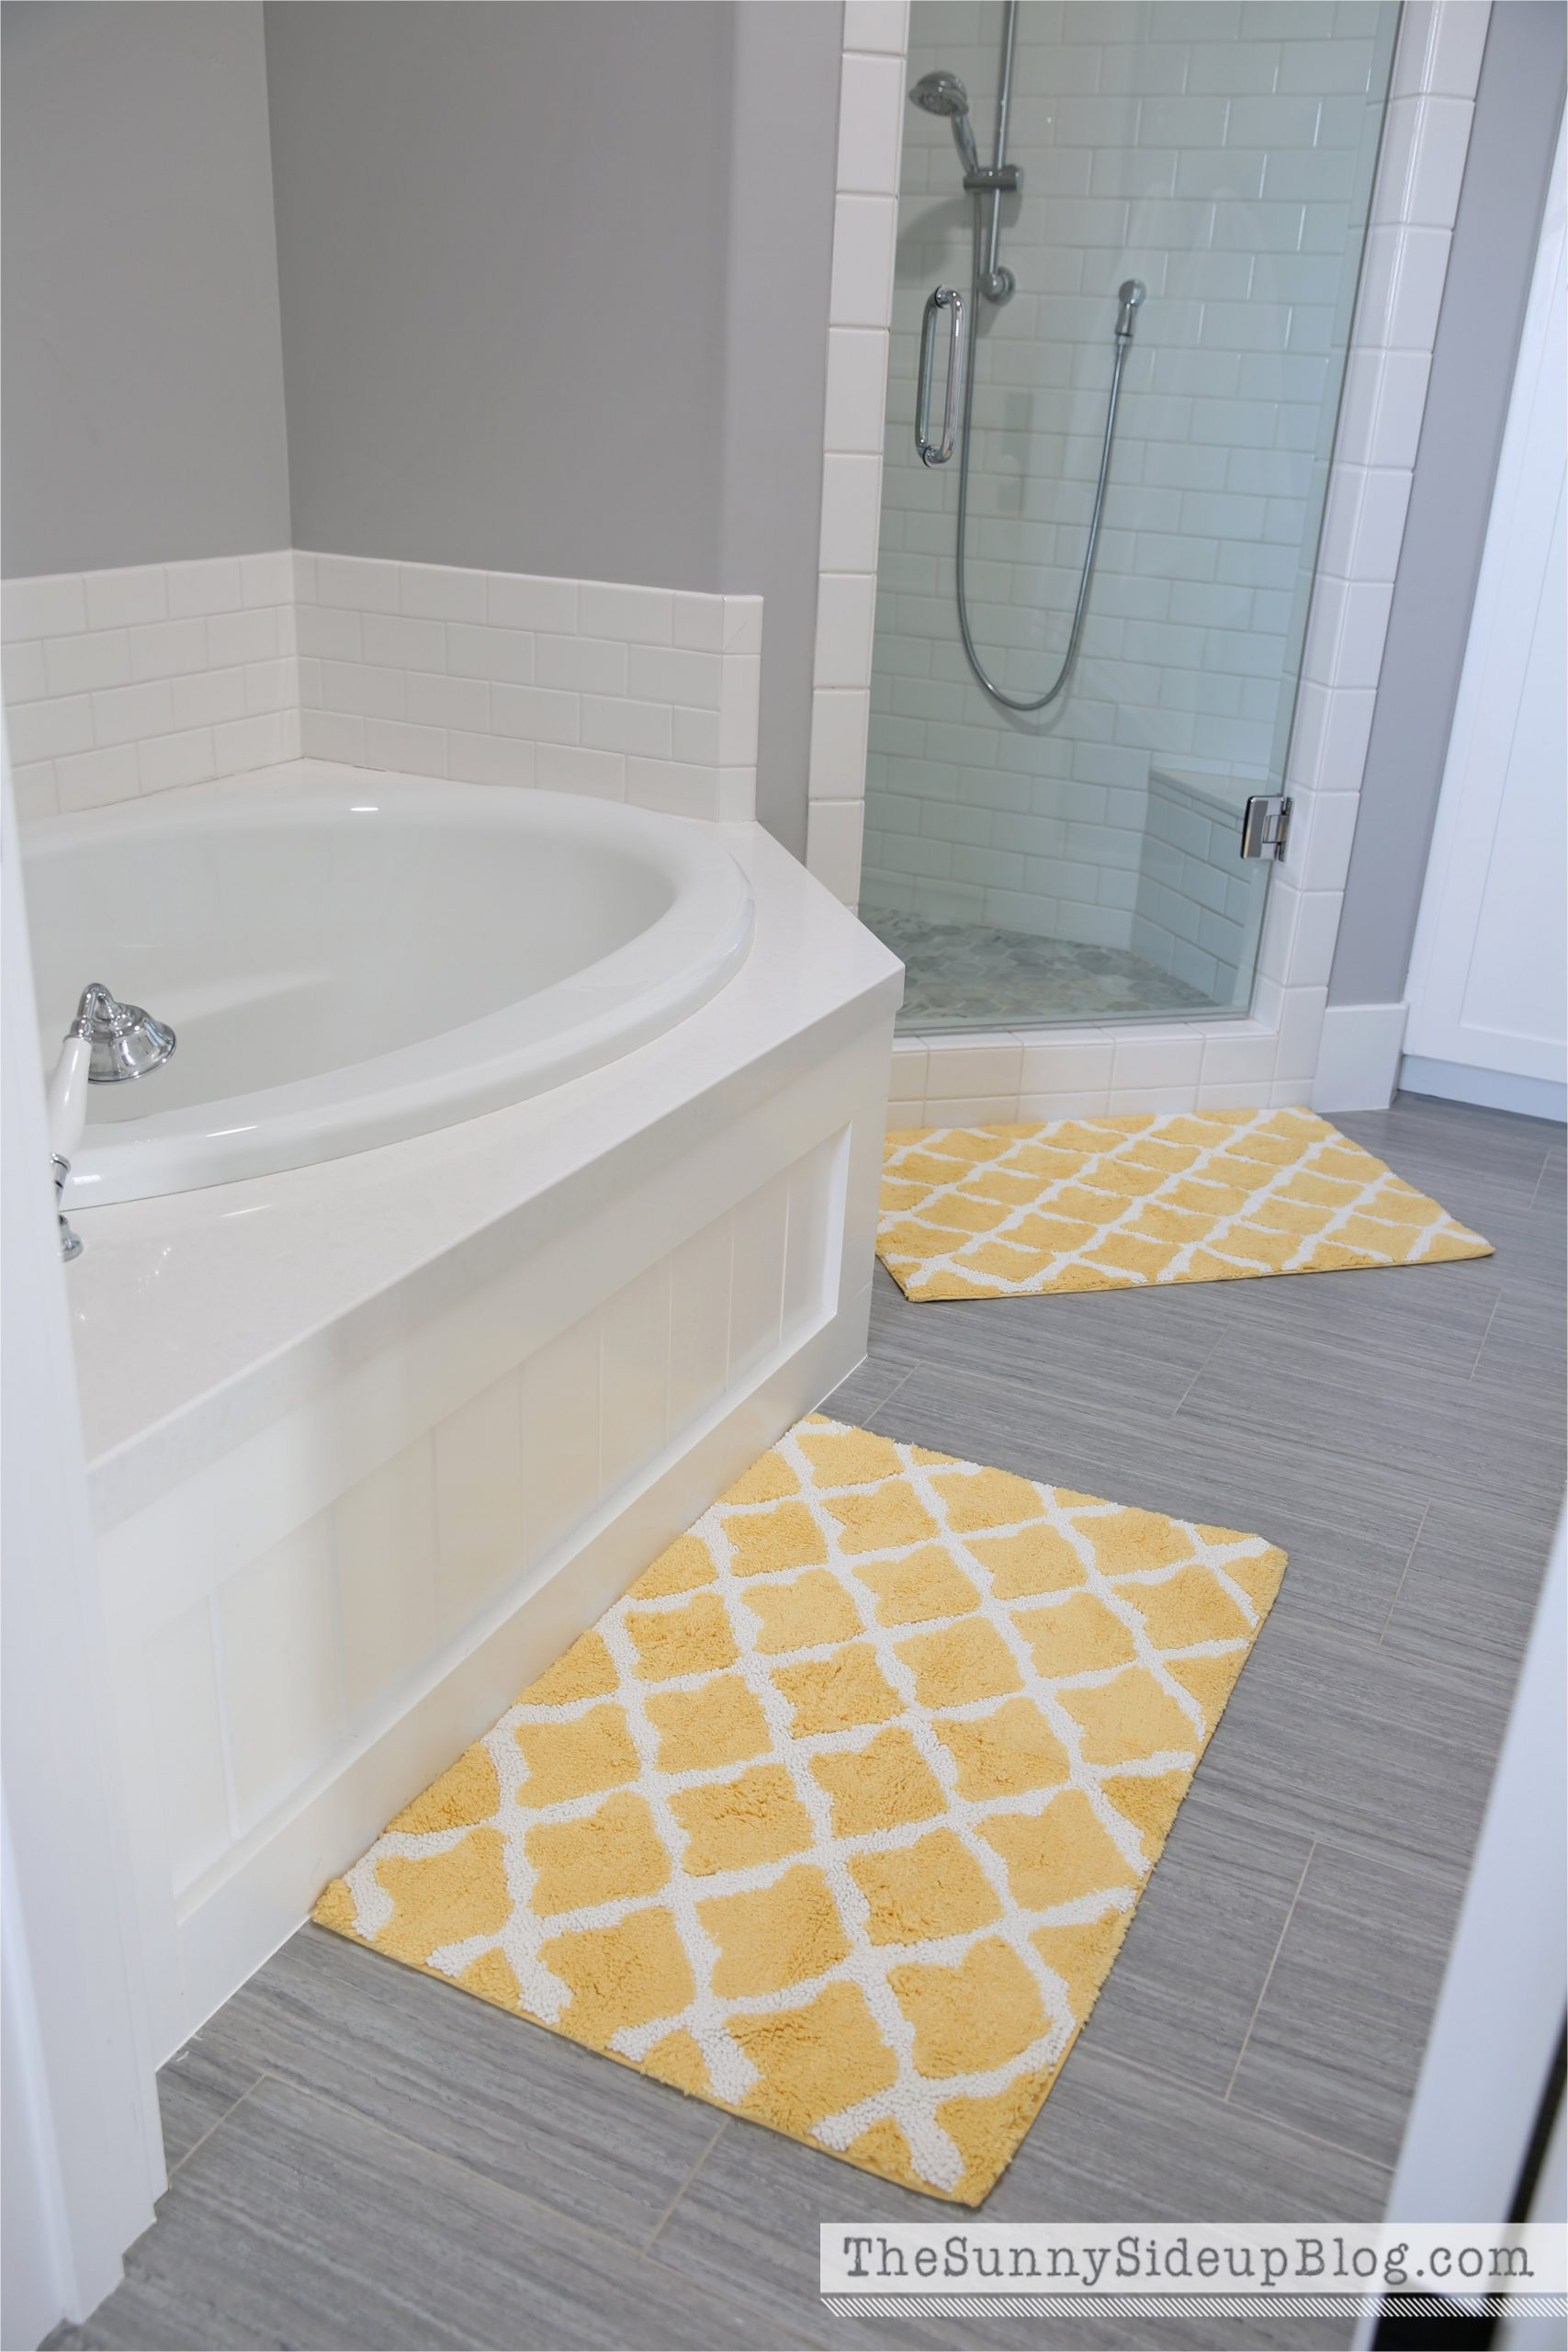 Target Bath Mats and Rugs Bathroom Rugs Tar Image Of Bathroom and Closet